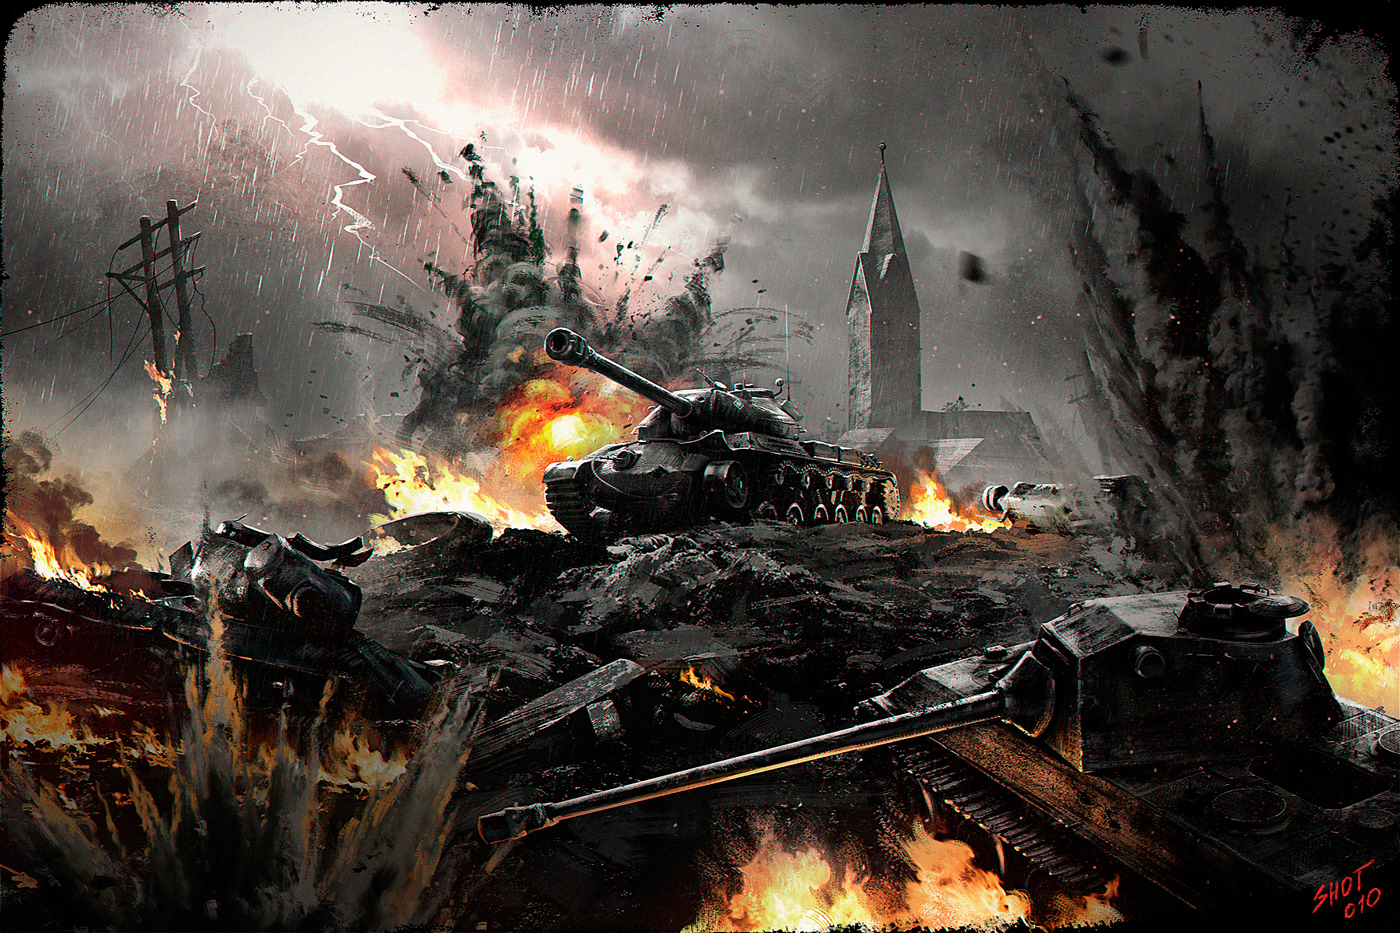 TV Commercial world of tanks concept art Advertising  hussars tanks poland compaign illustrations